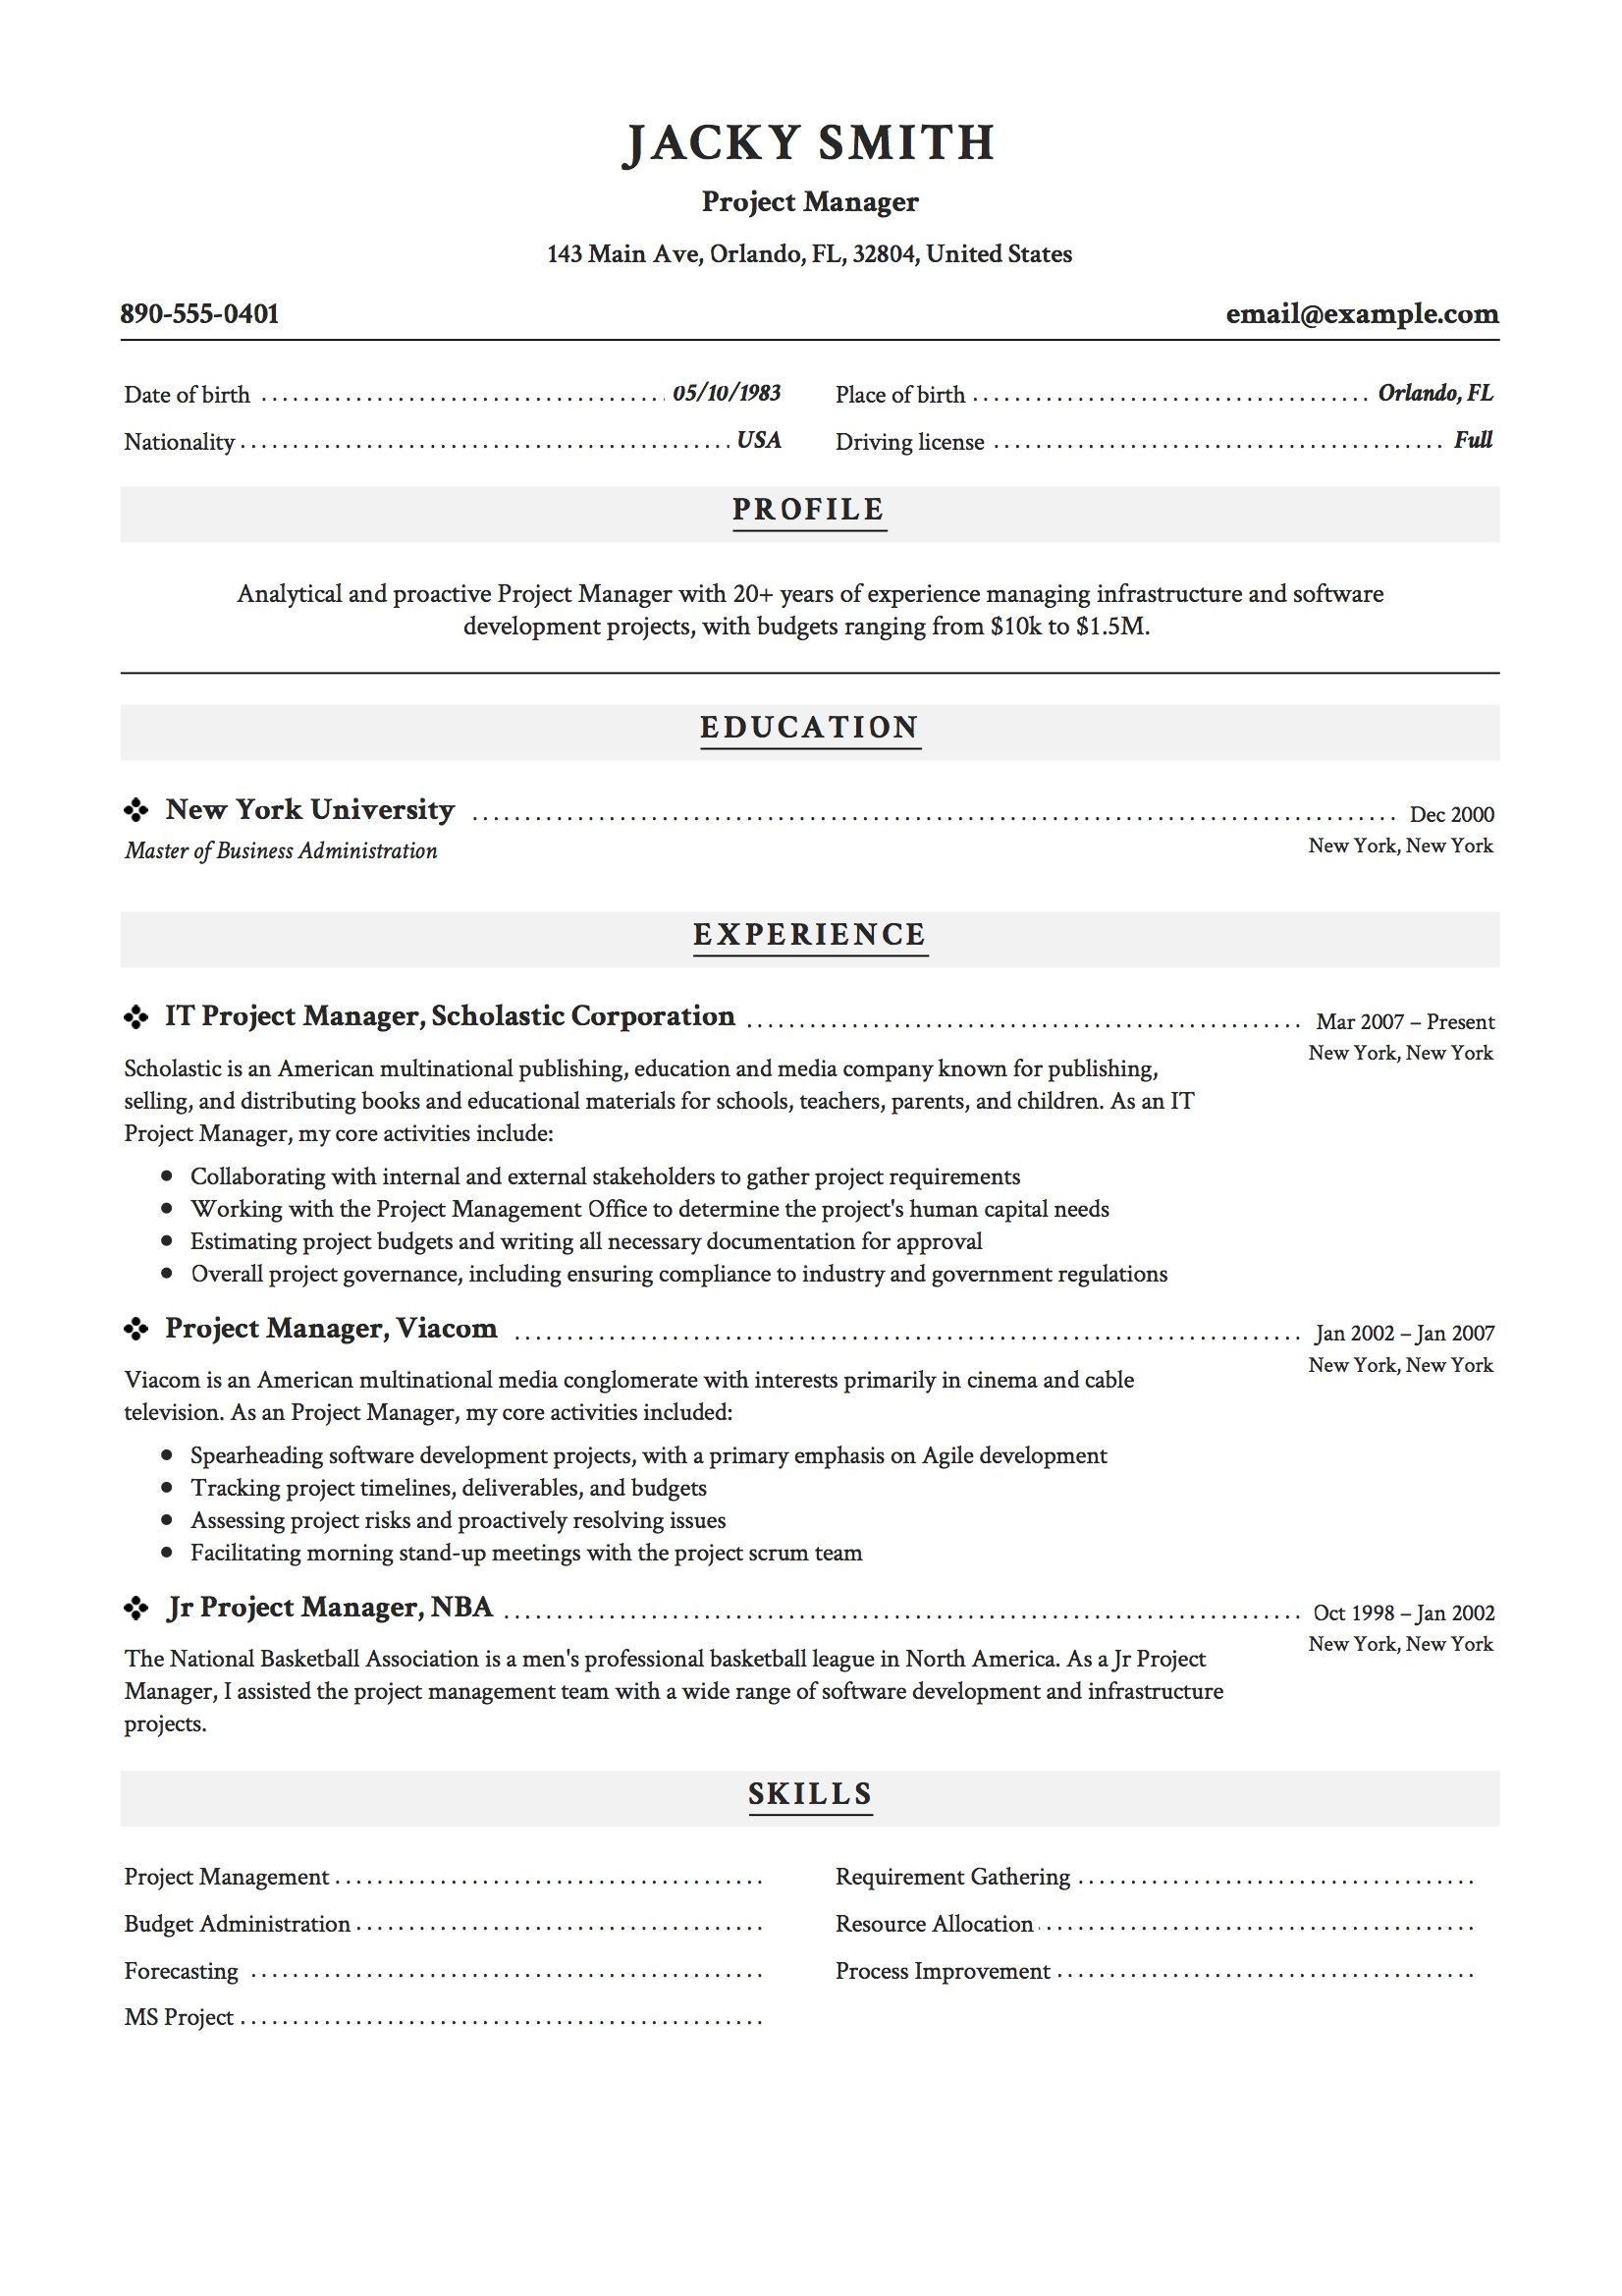 project manager resume examples full guide pdf word free sample fau help shipping and Resume Project Manager Resume Examples Free